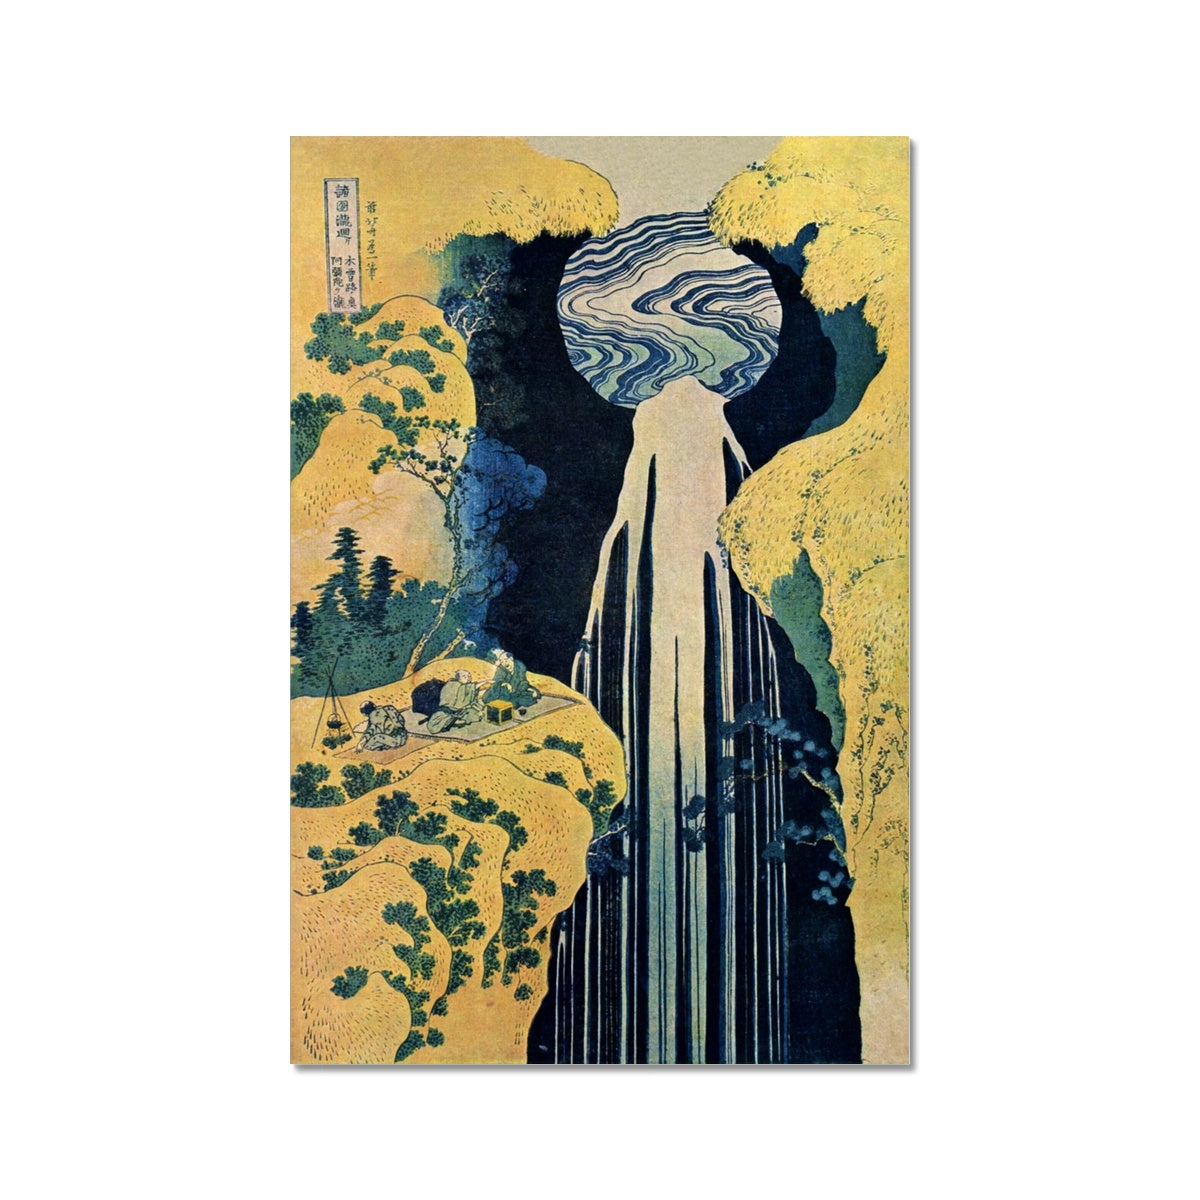 The Amida Falls in the Far Reaches of the Kisokaido Road (1833-34) - Fine Art Print